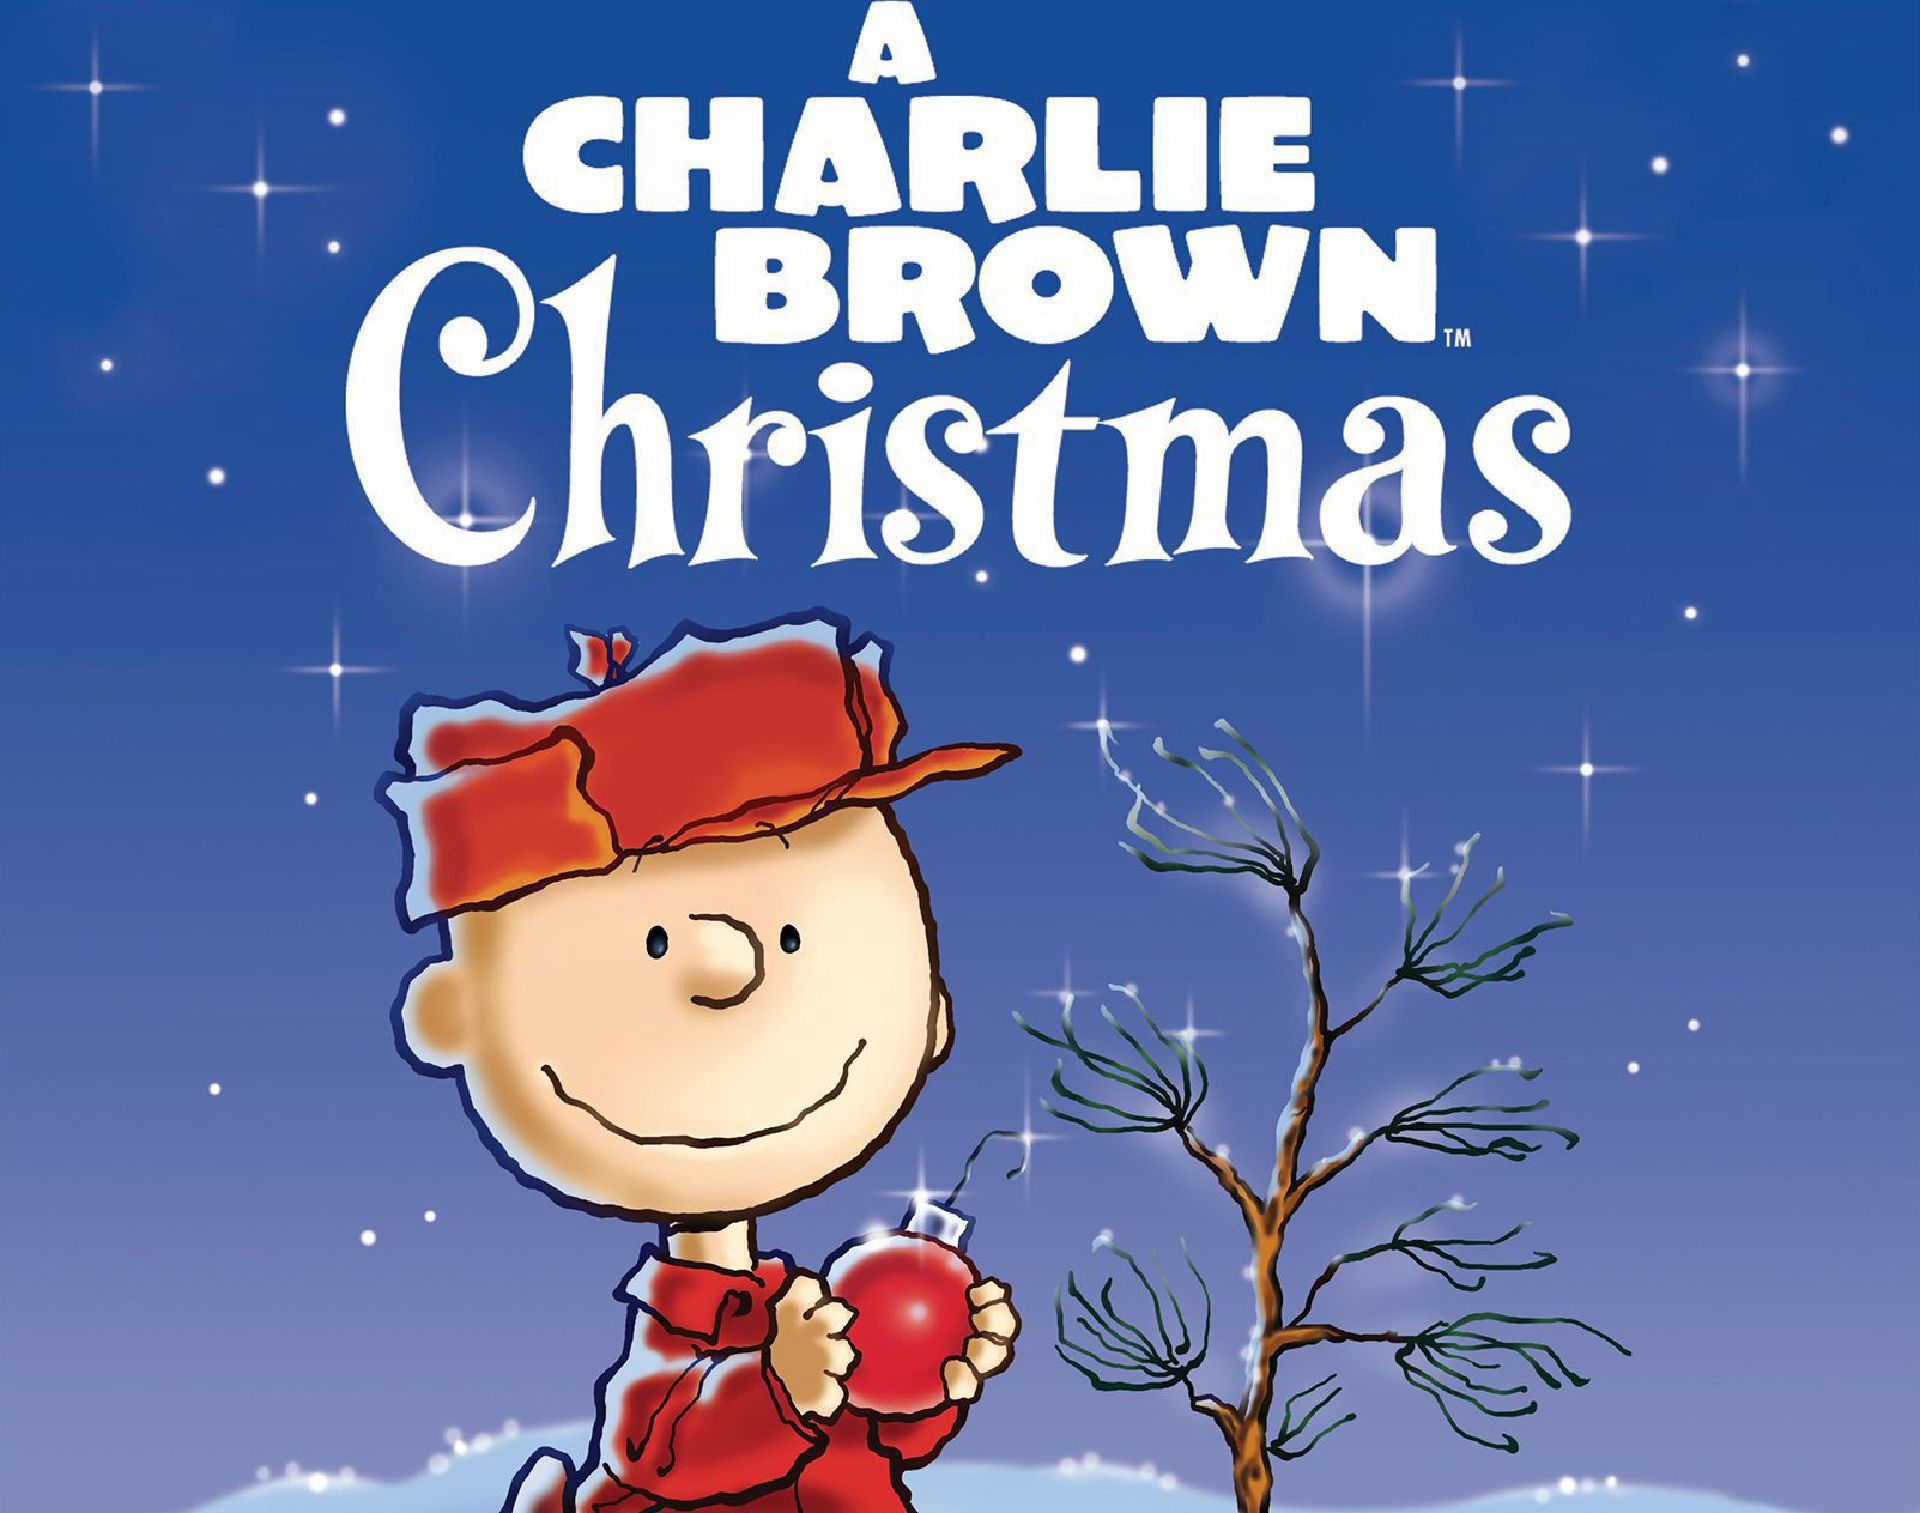 charlie brown christmas wallpaper for computer